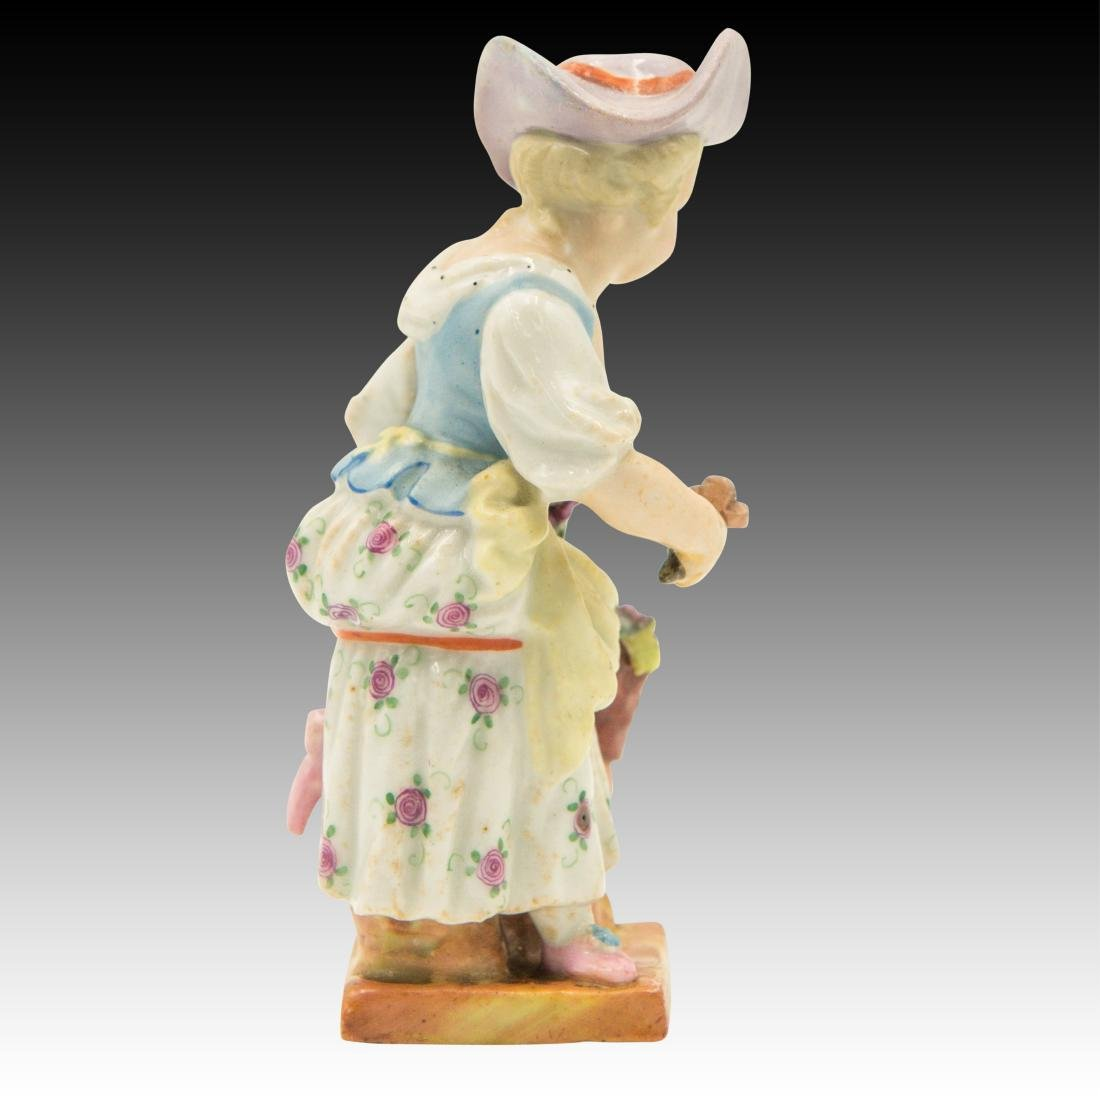 Small Figurine of a Young Girl with Flowers - 2